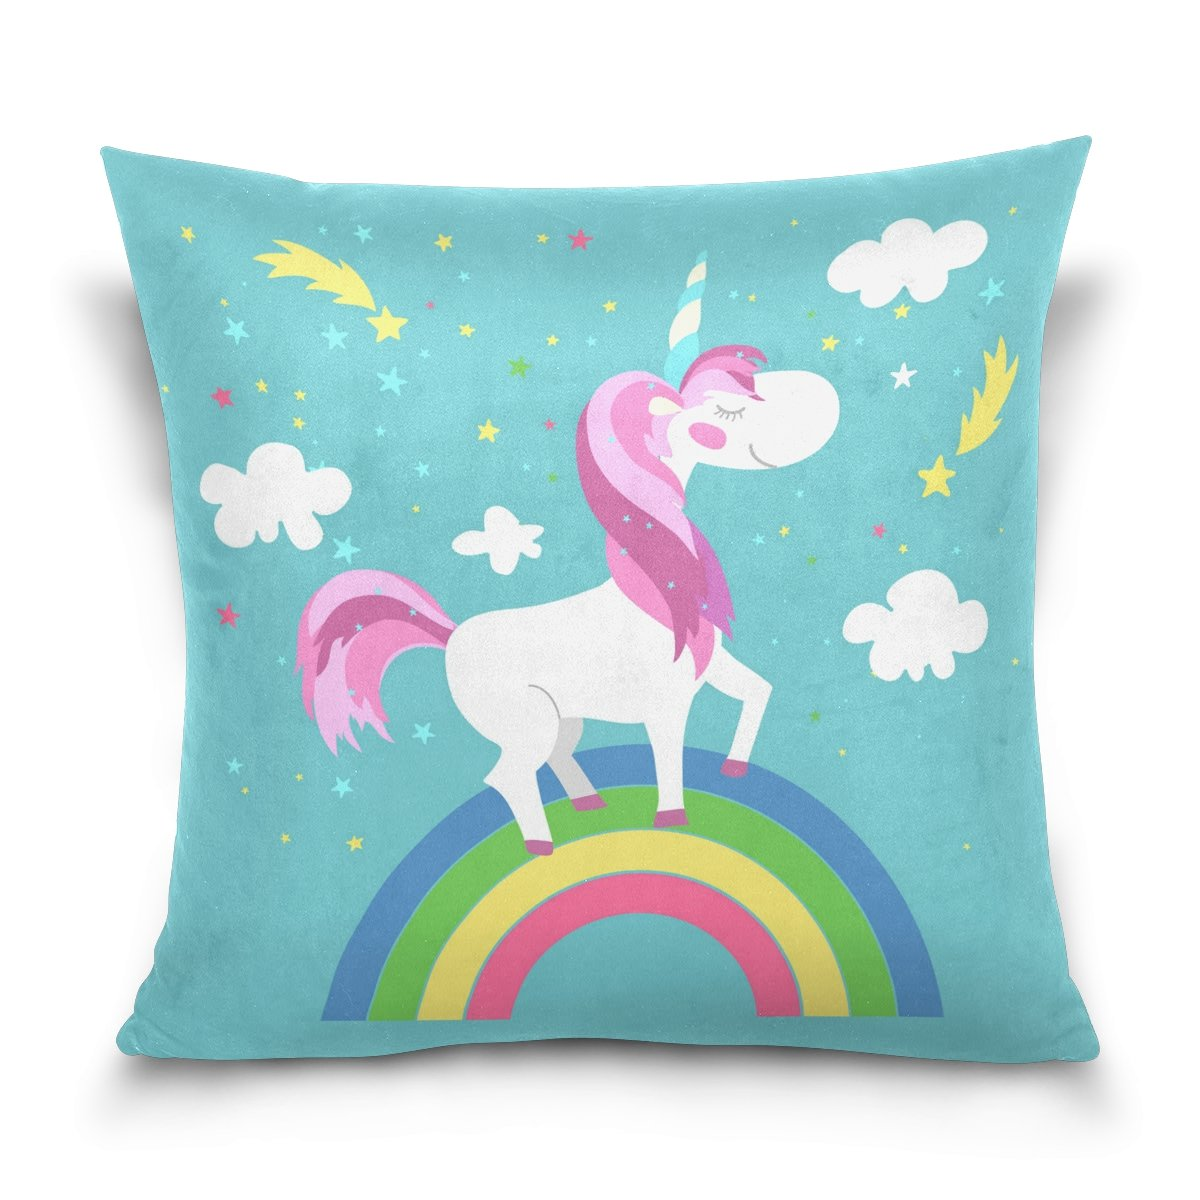 ALAZA Colorful Rainbow Cute Unicorn Cotton Pillowcase 16 X 16 Inches Twin Sides, Cartoon Animal Unicorn Pillow Case Sham Cover Protector Decorative for Home Hotel Couch Ded